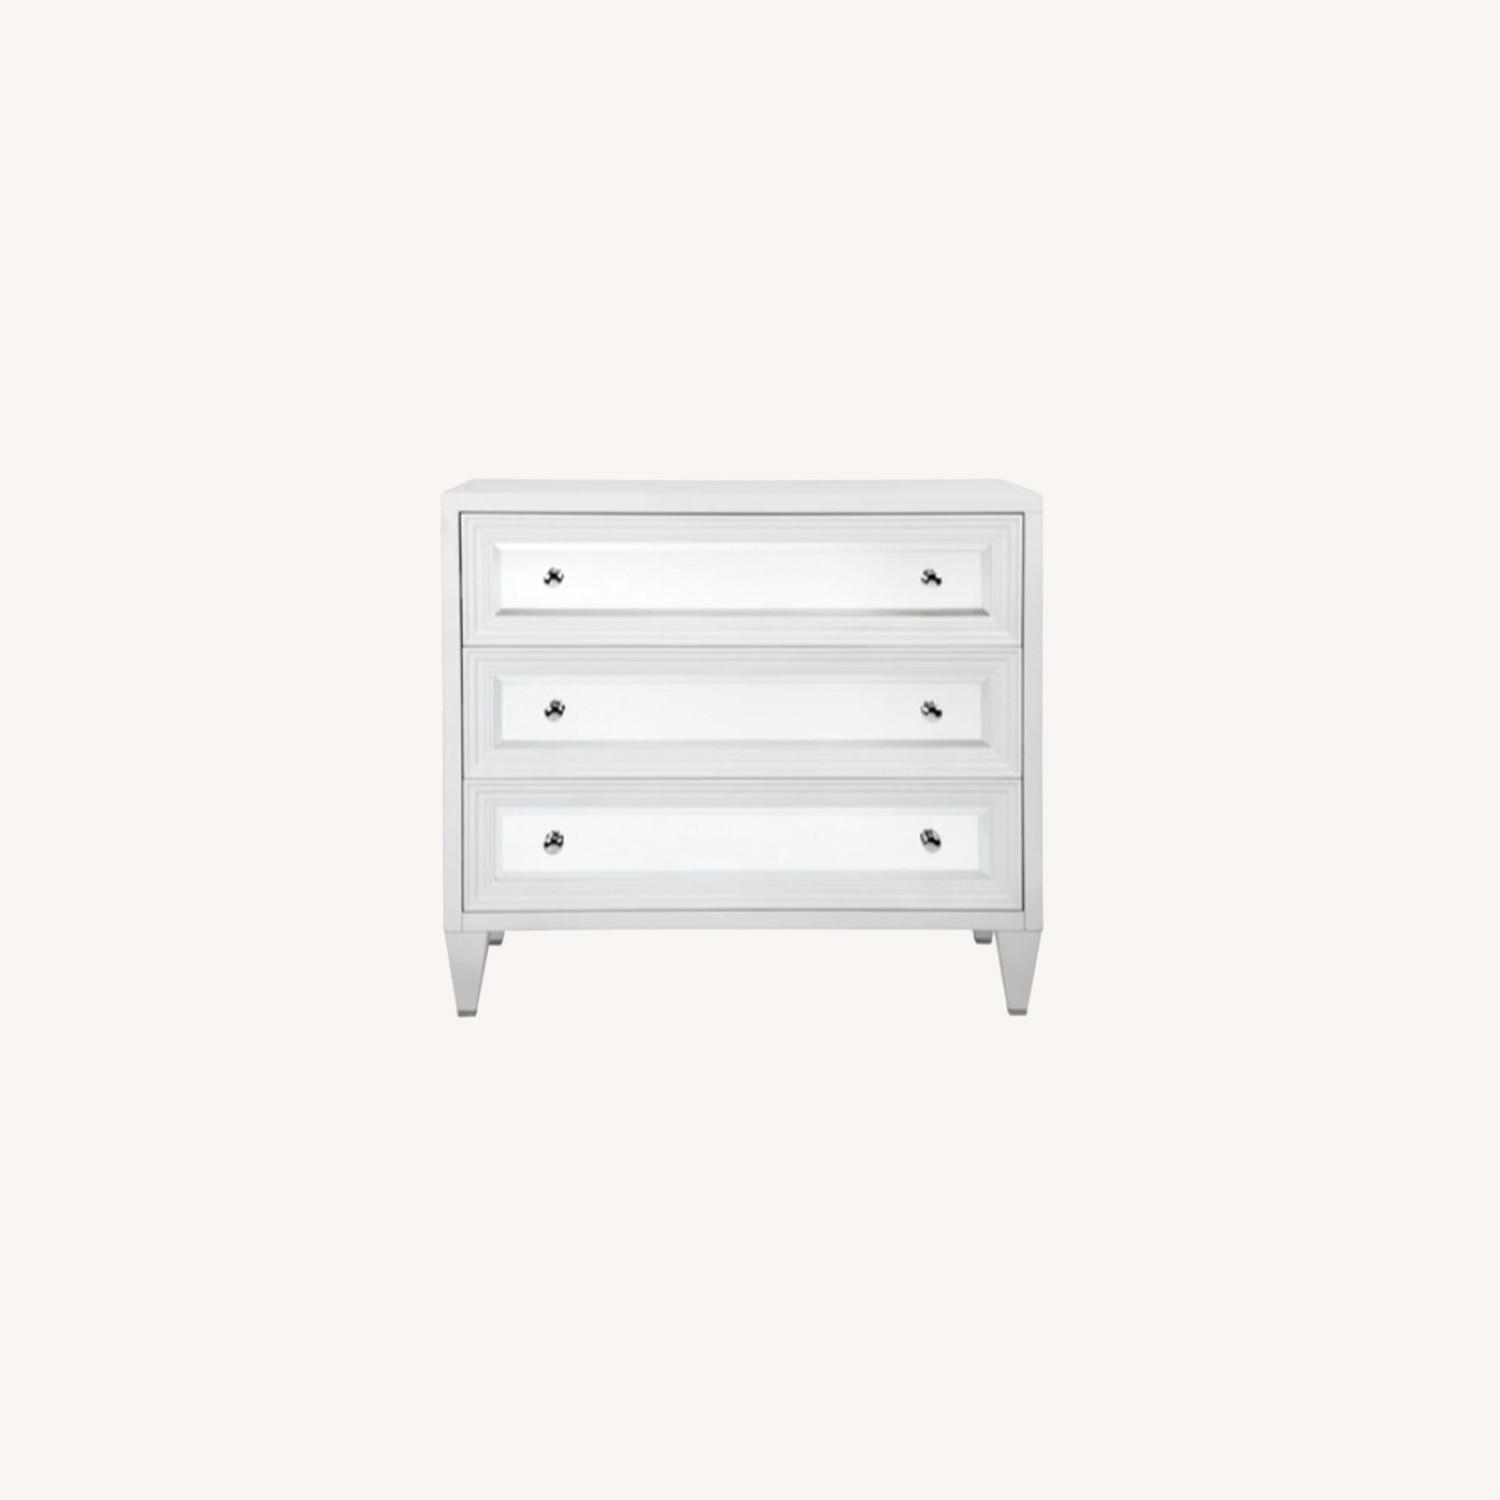 White and Mirrored 3 Drawer Chest - image-0